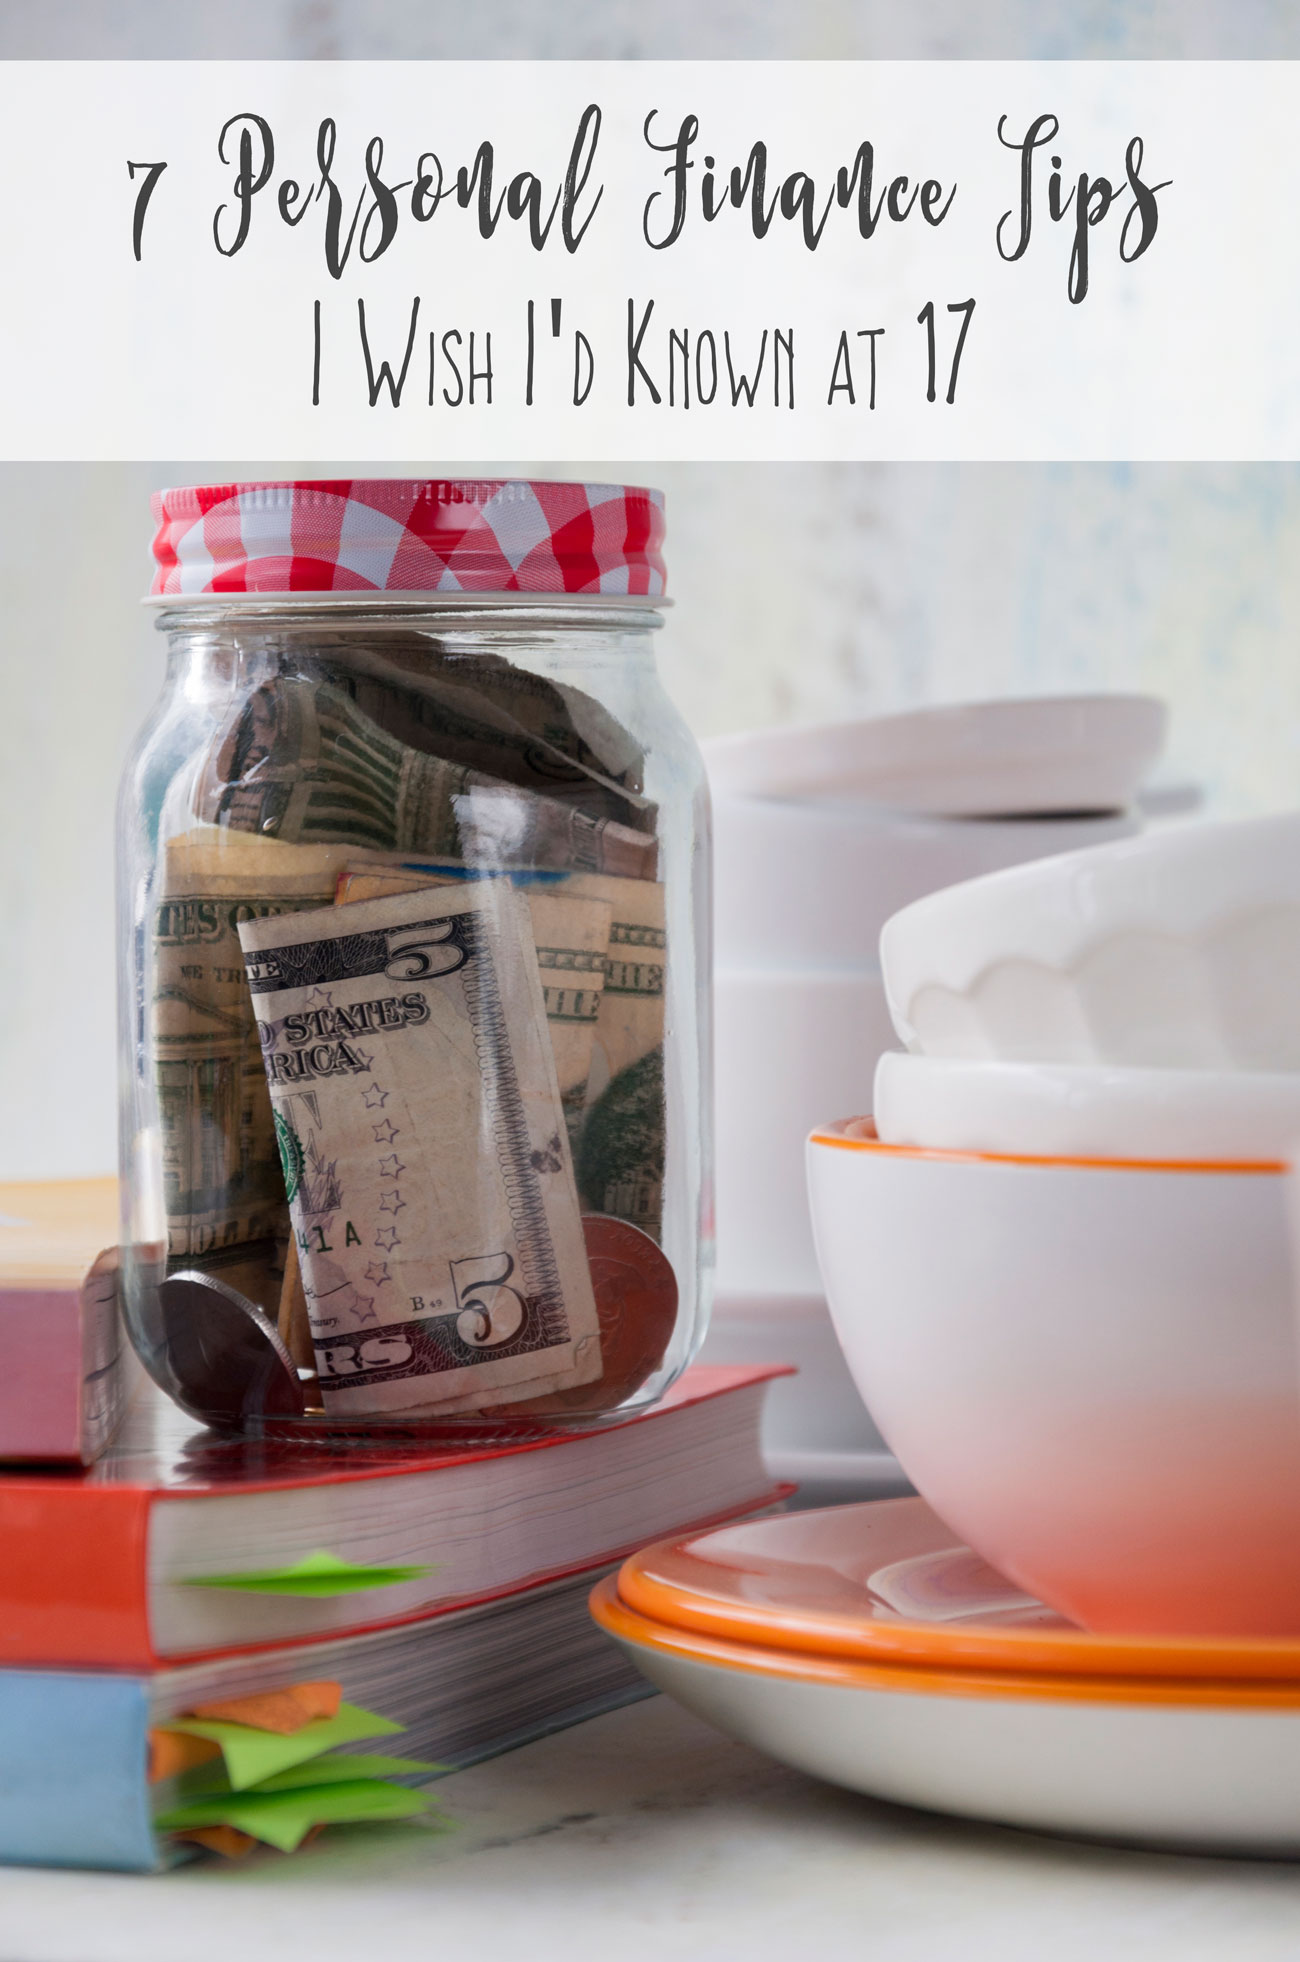 7 Personal Finance Tips I Wish I'd Known at 17 - Molly's Money Reader Question by lifestyle blogger Still Being Molly